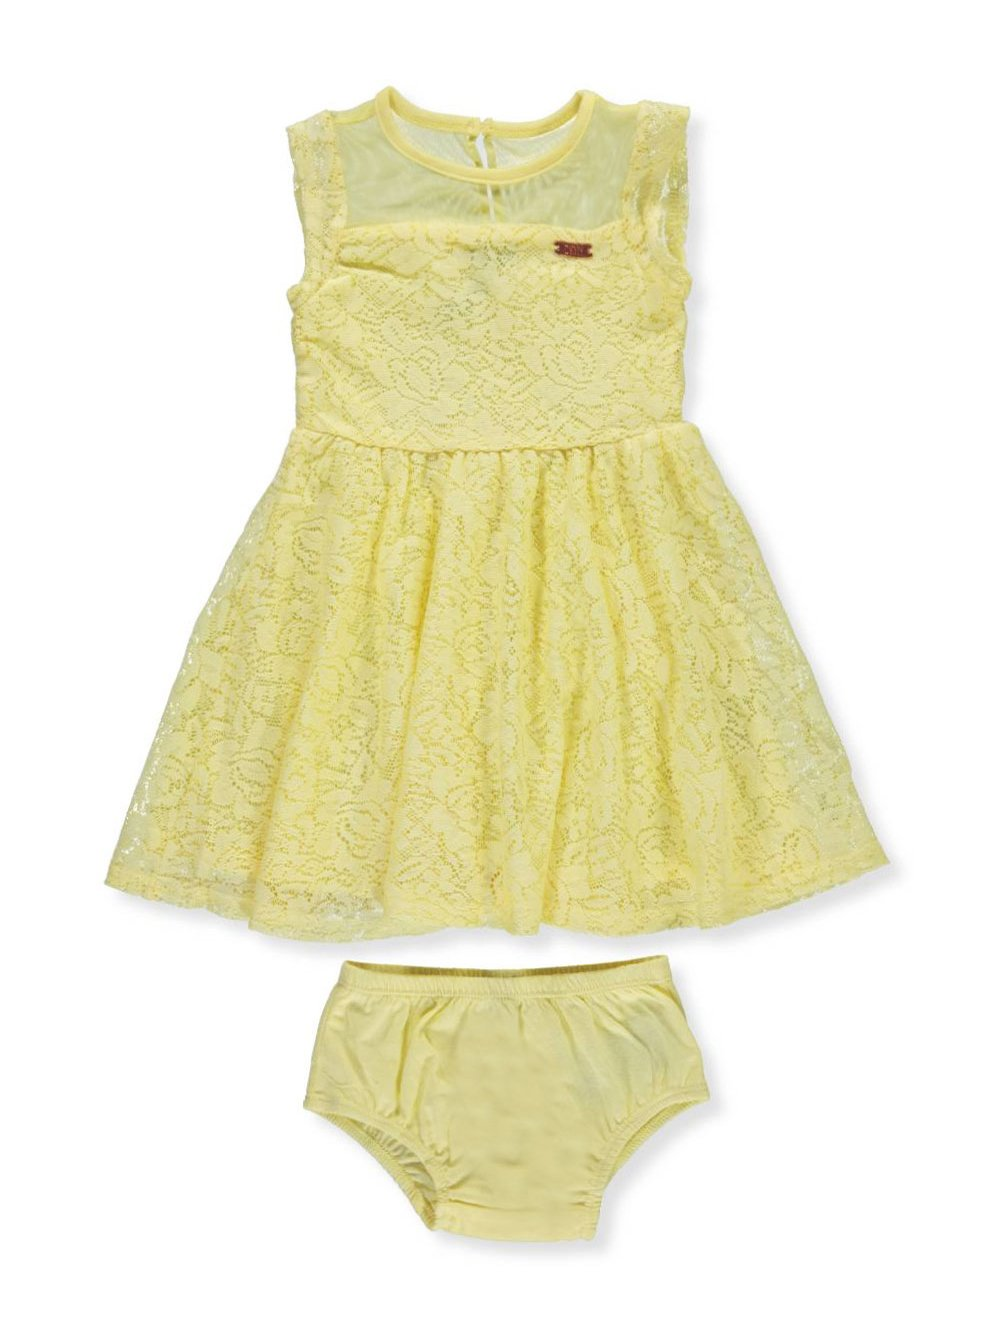 DKNY Baby Girls Casual Dress, Lemonade-XOBGB, 24M